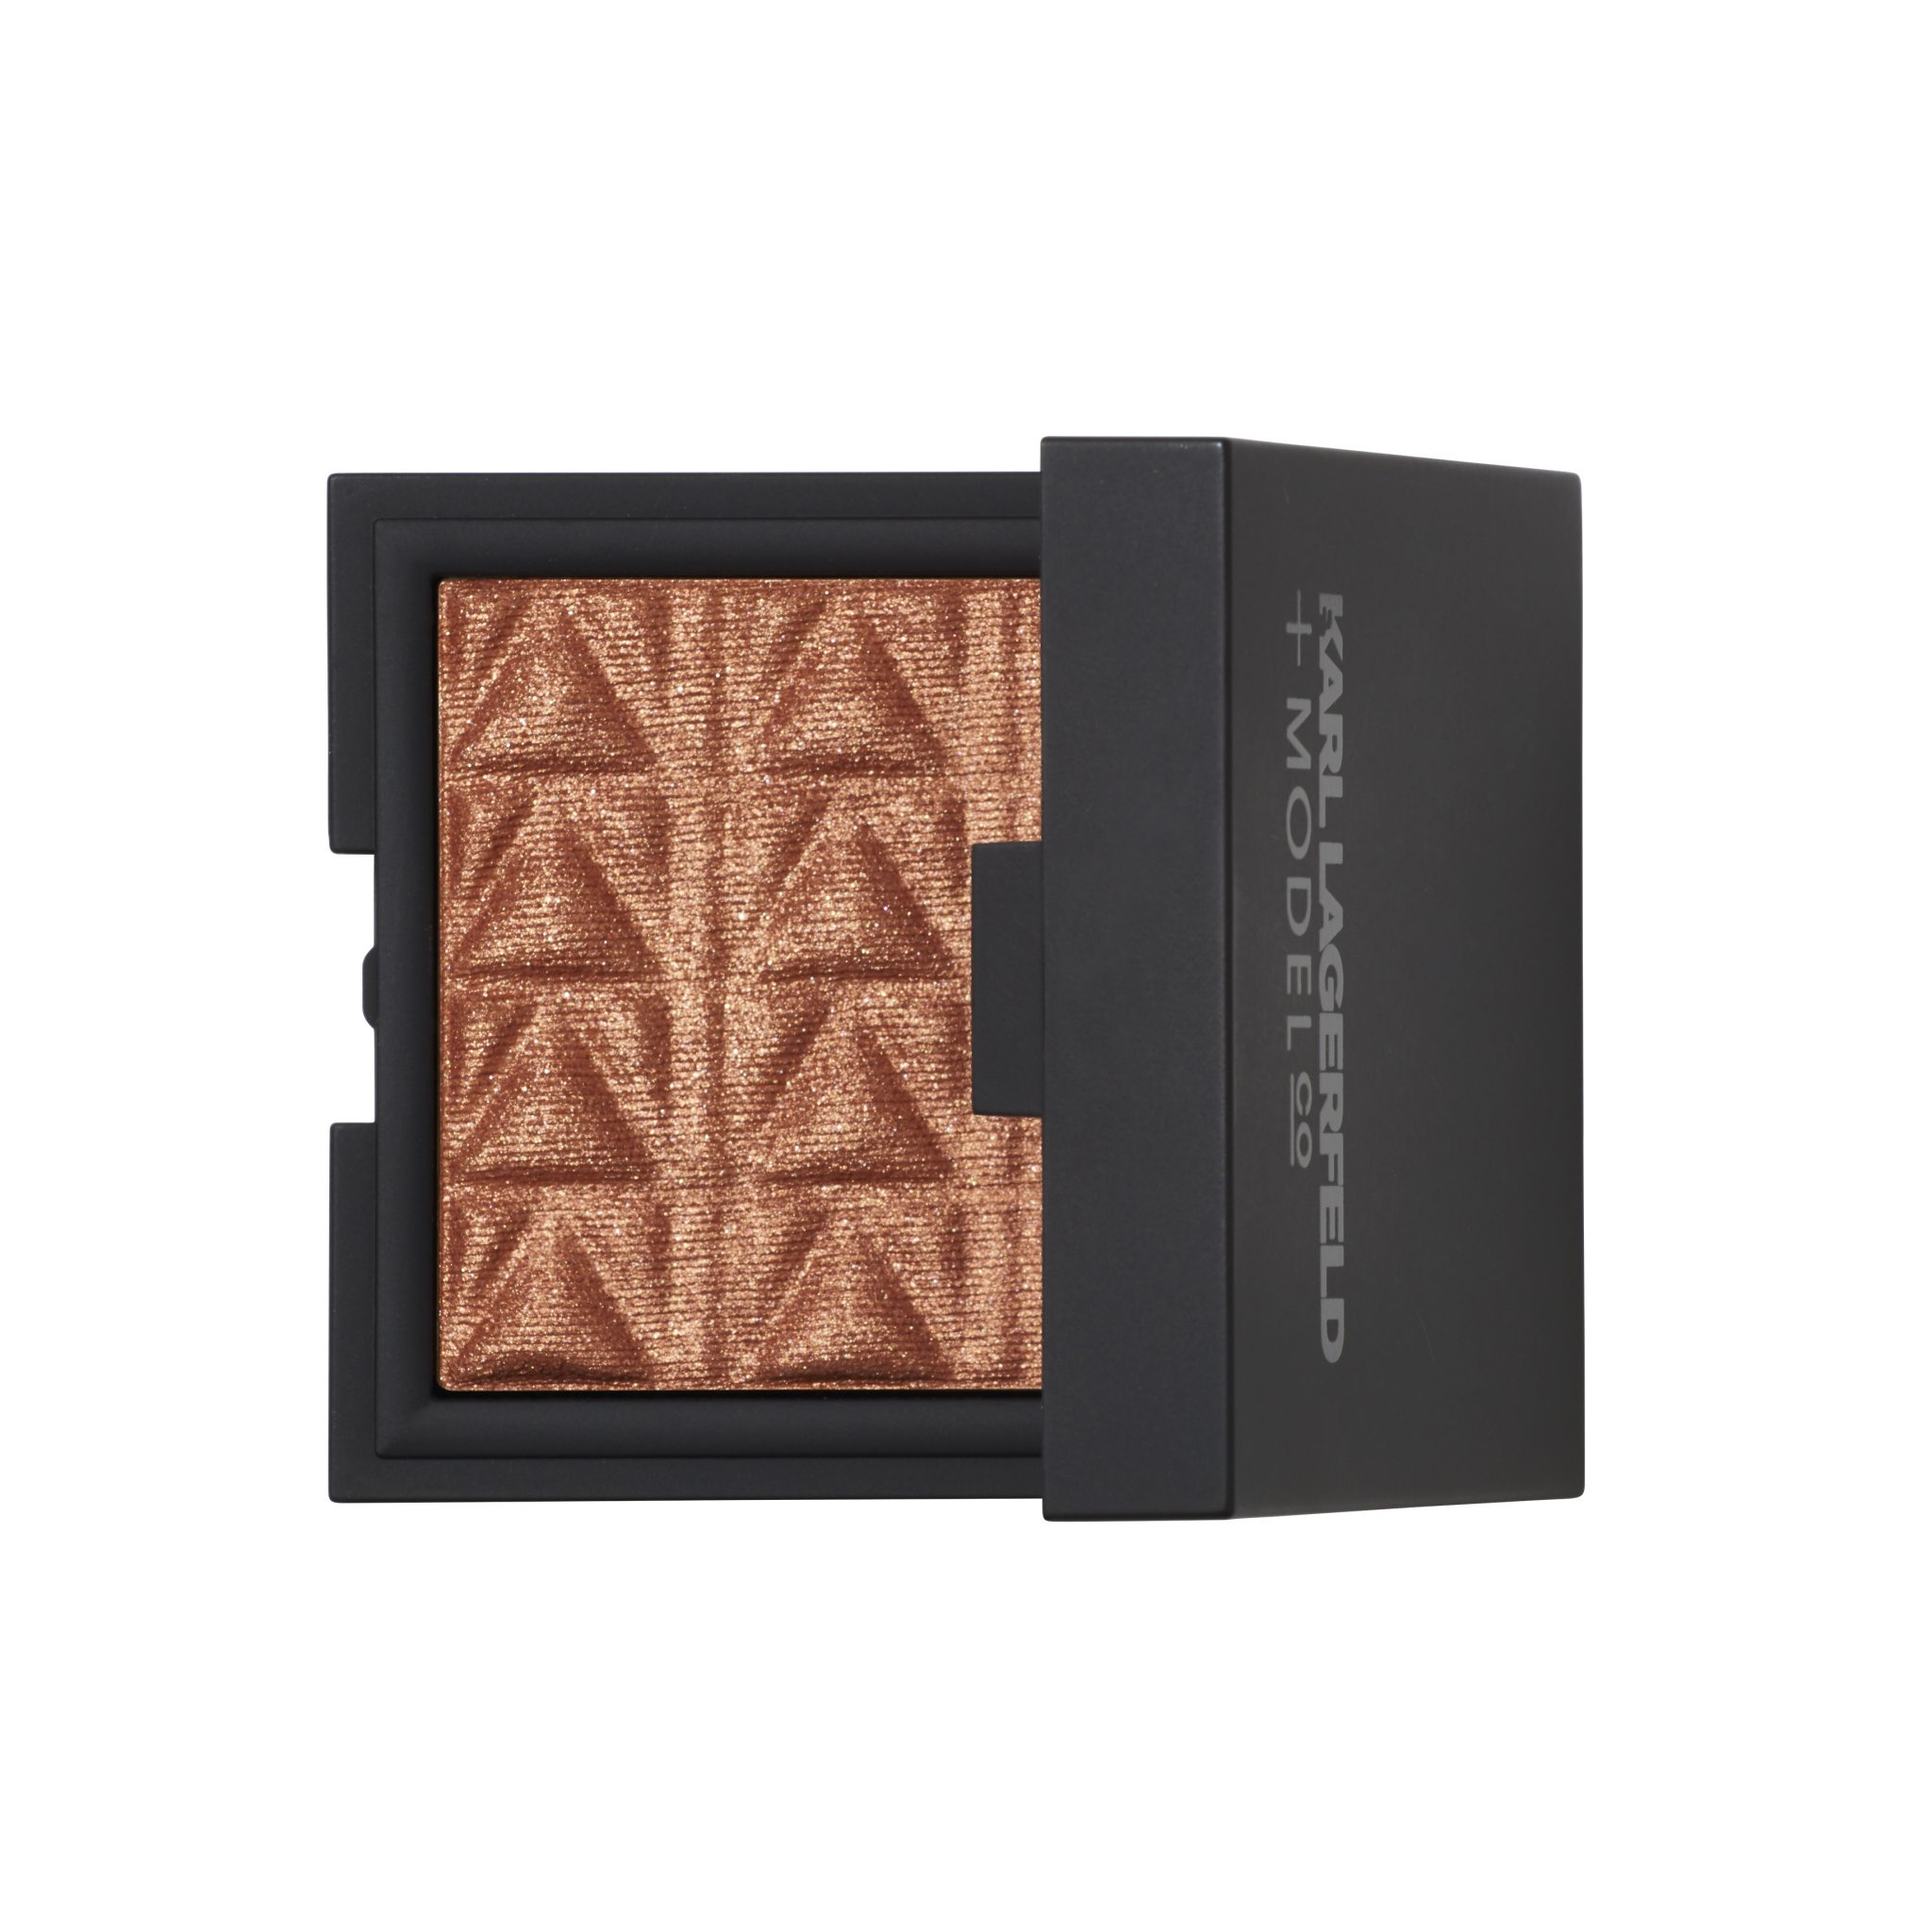 KARL LAGERFELD + MODELCO LUXE HIGHLIGHT & GLOW-BRONZE_OPEN